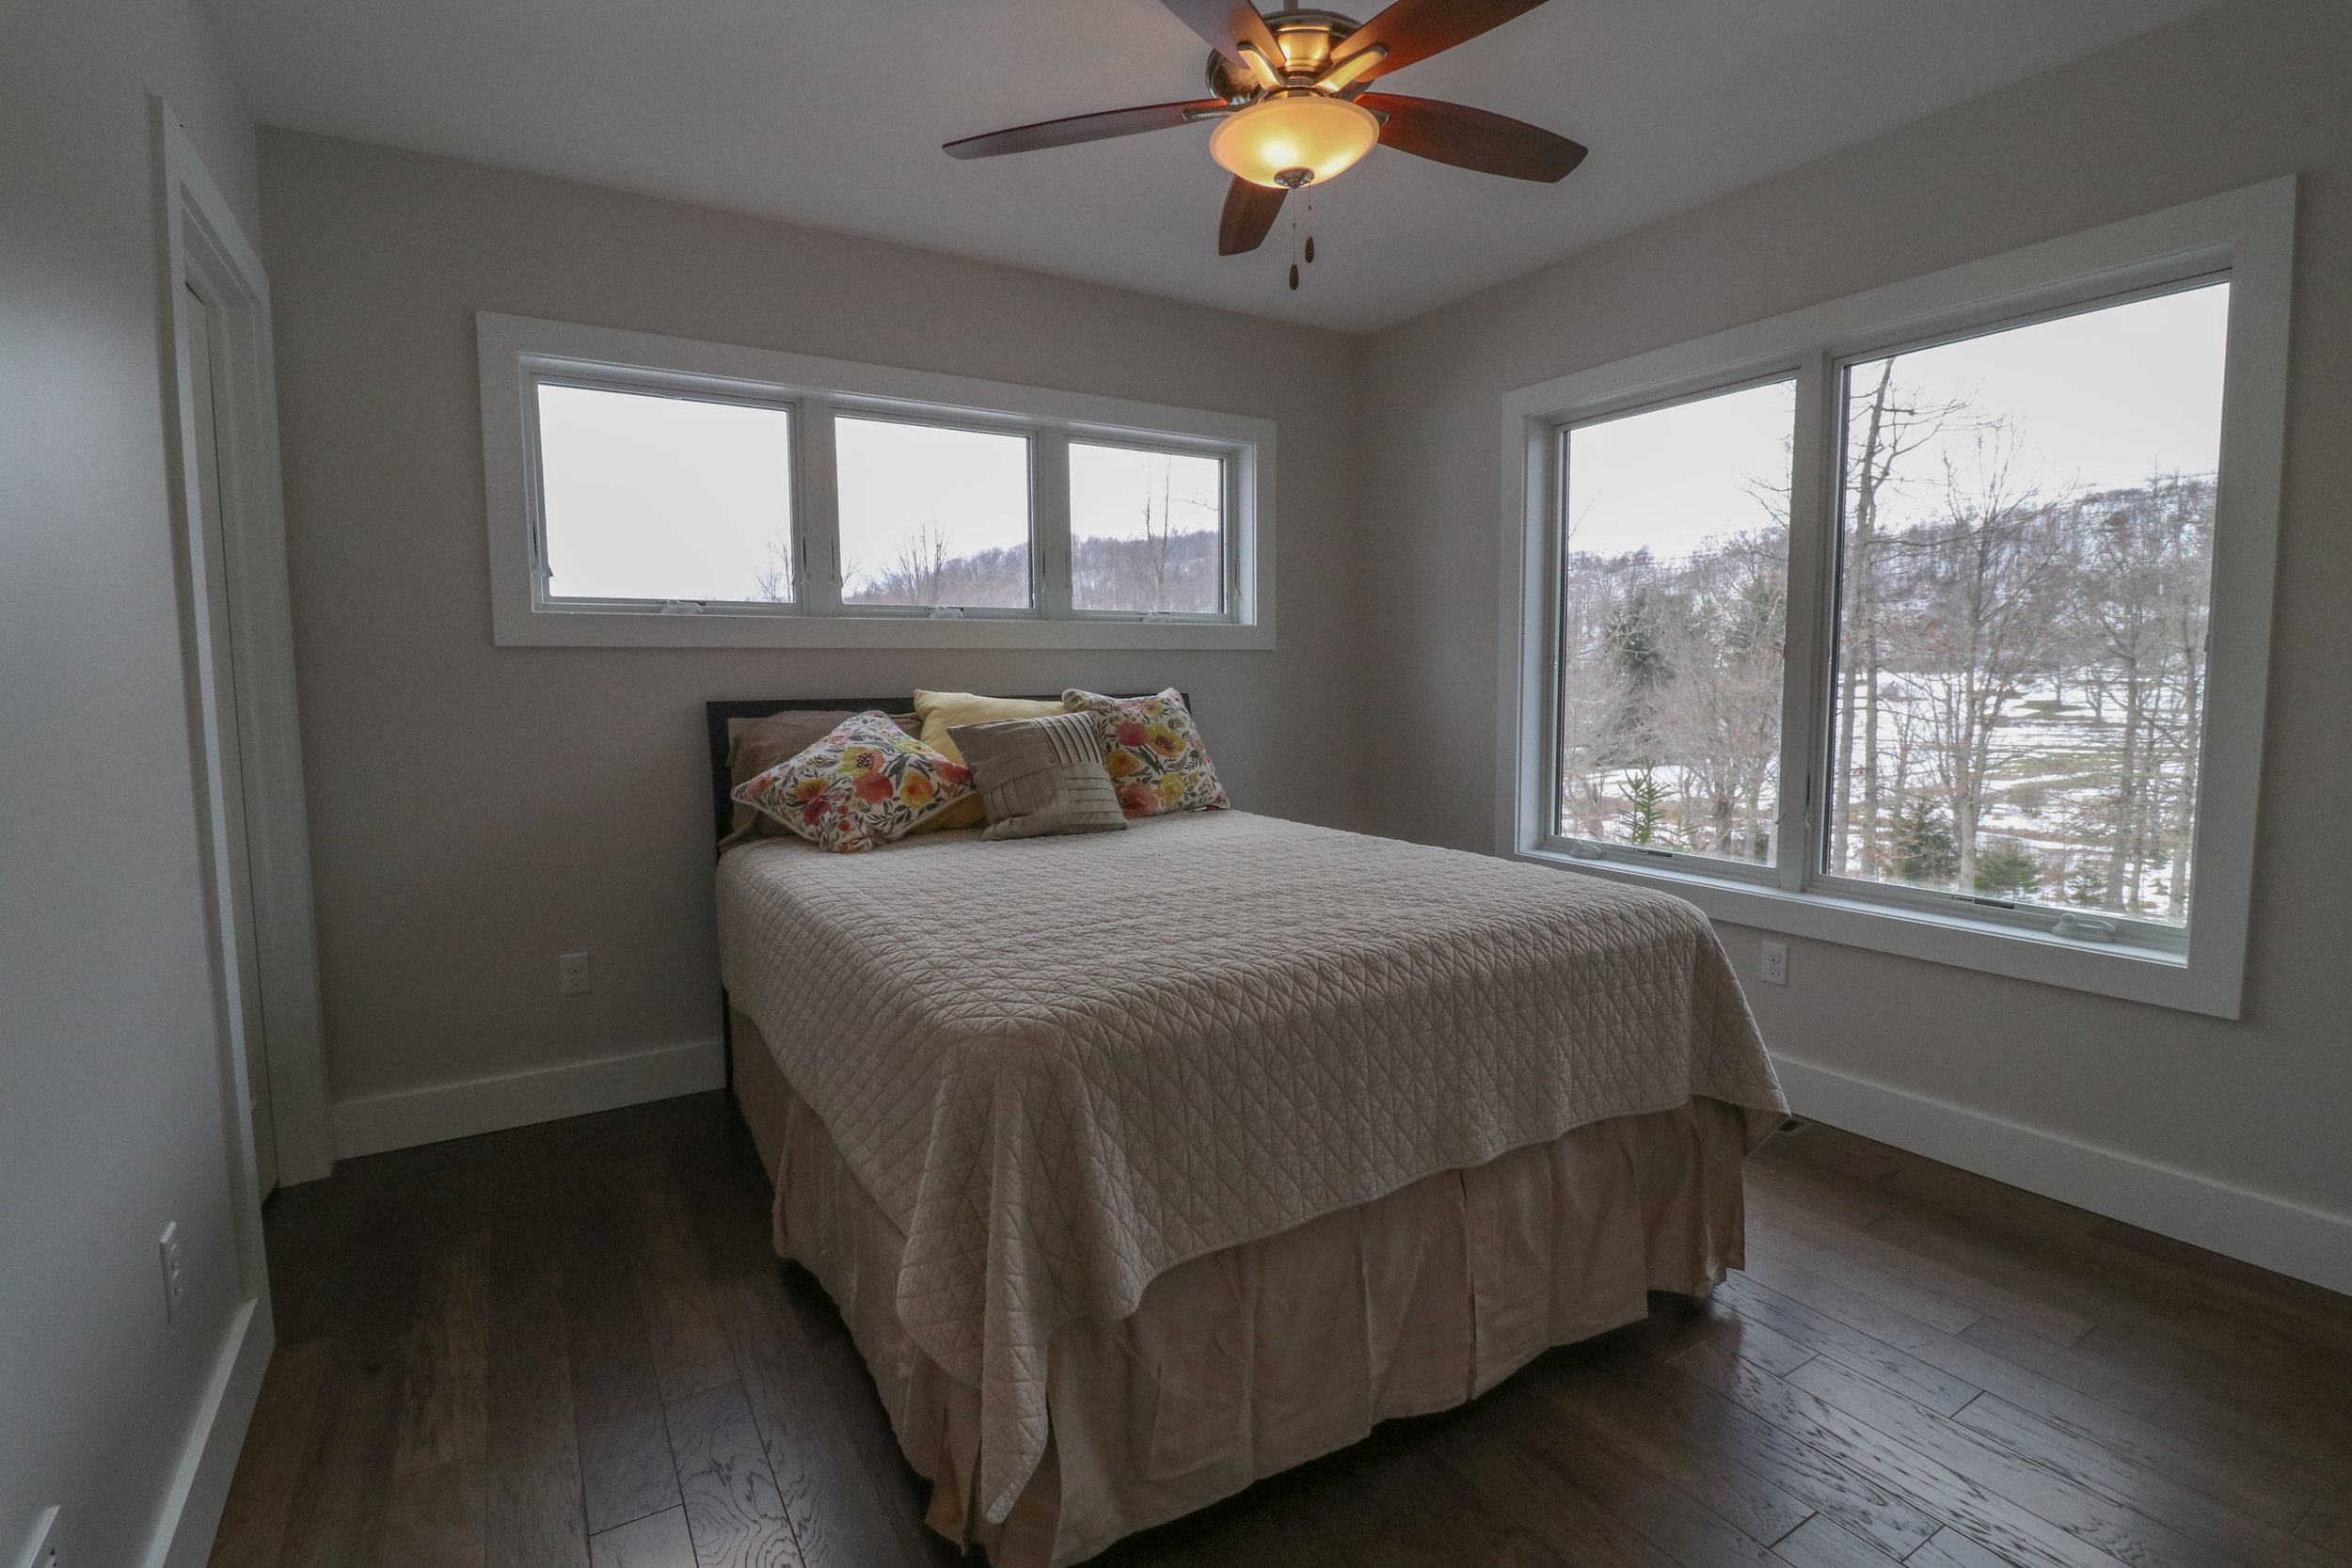 gosnell_builders_home_for_sale_ridgeview_valley22.jpg